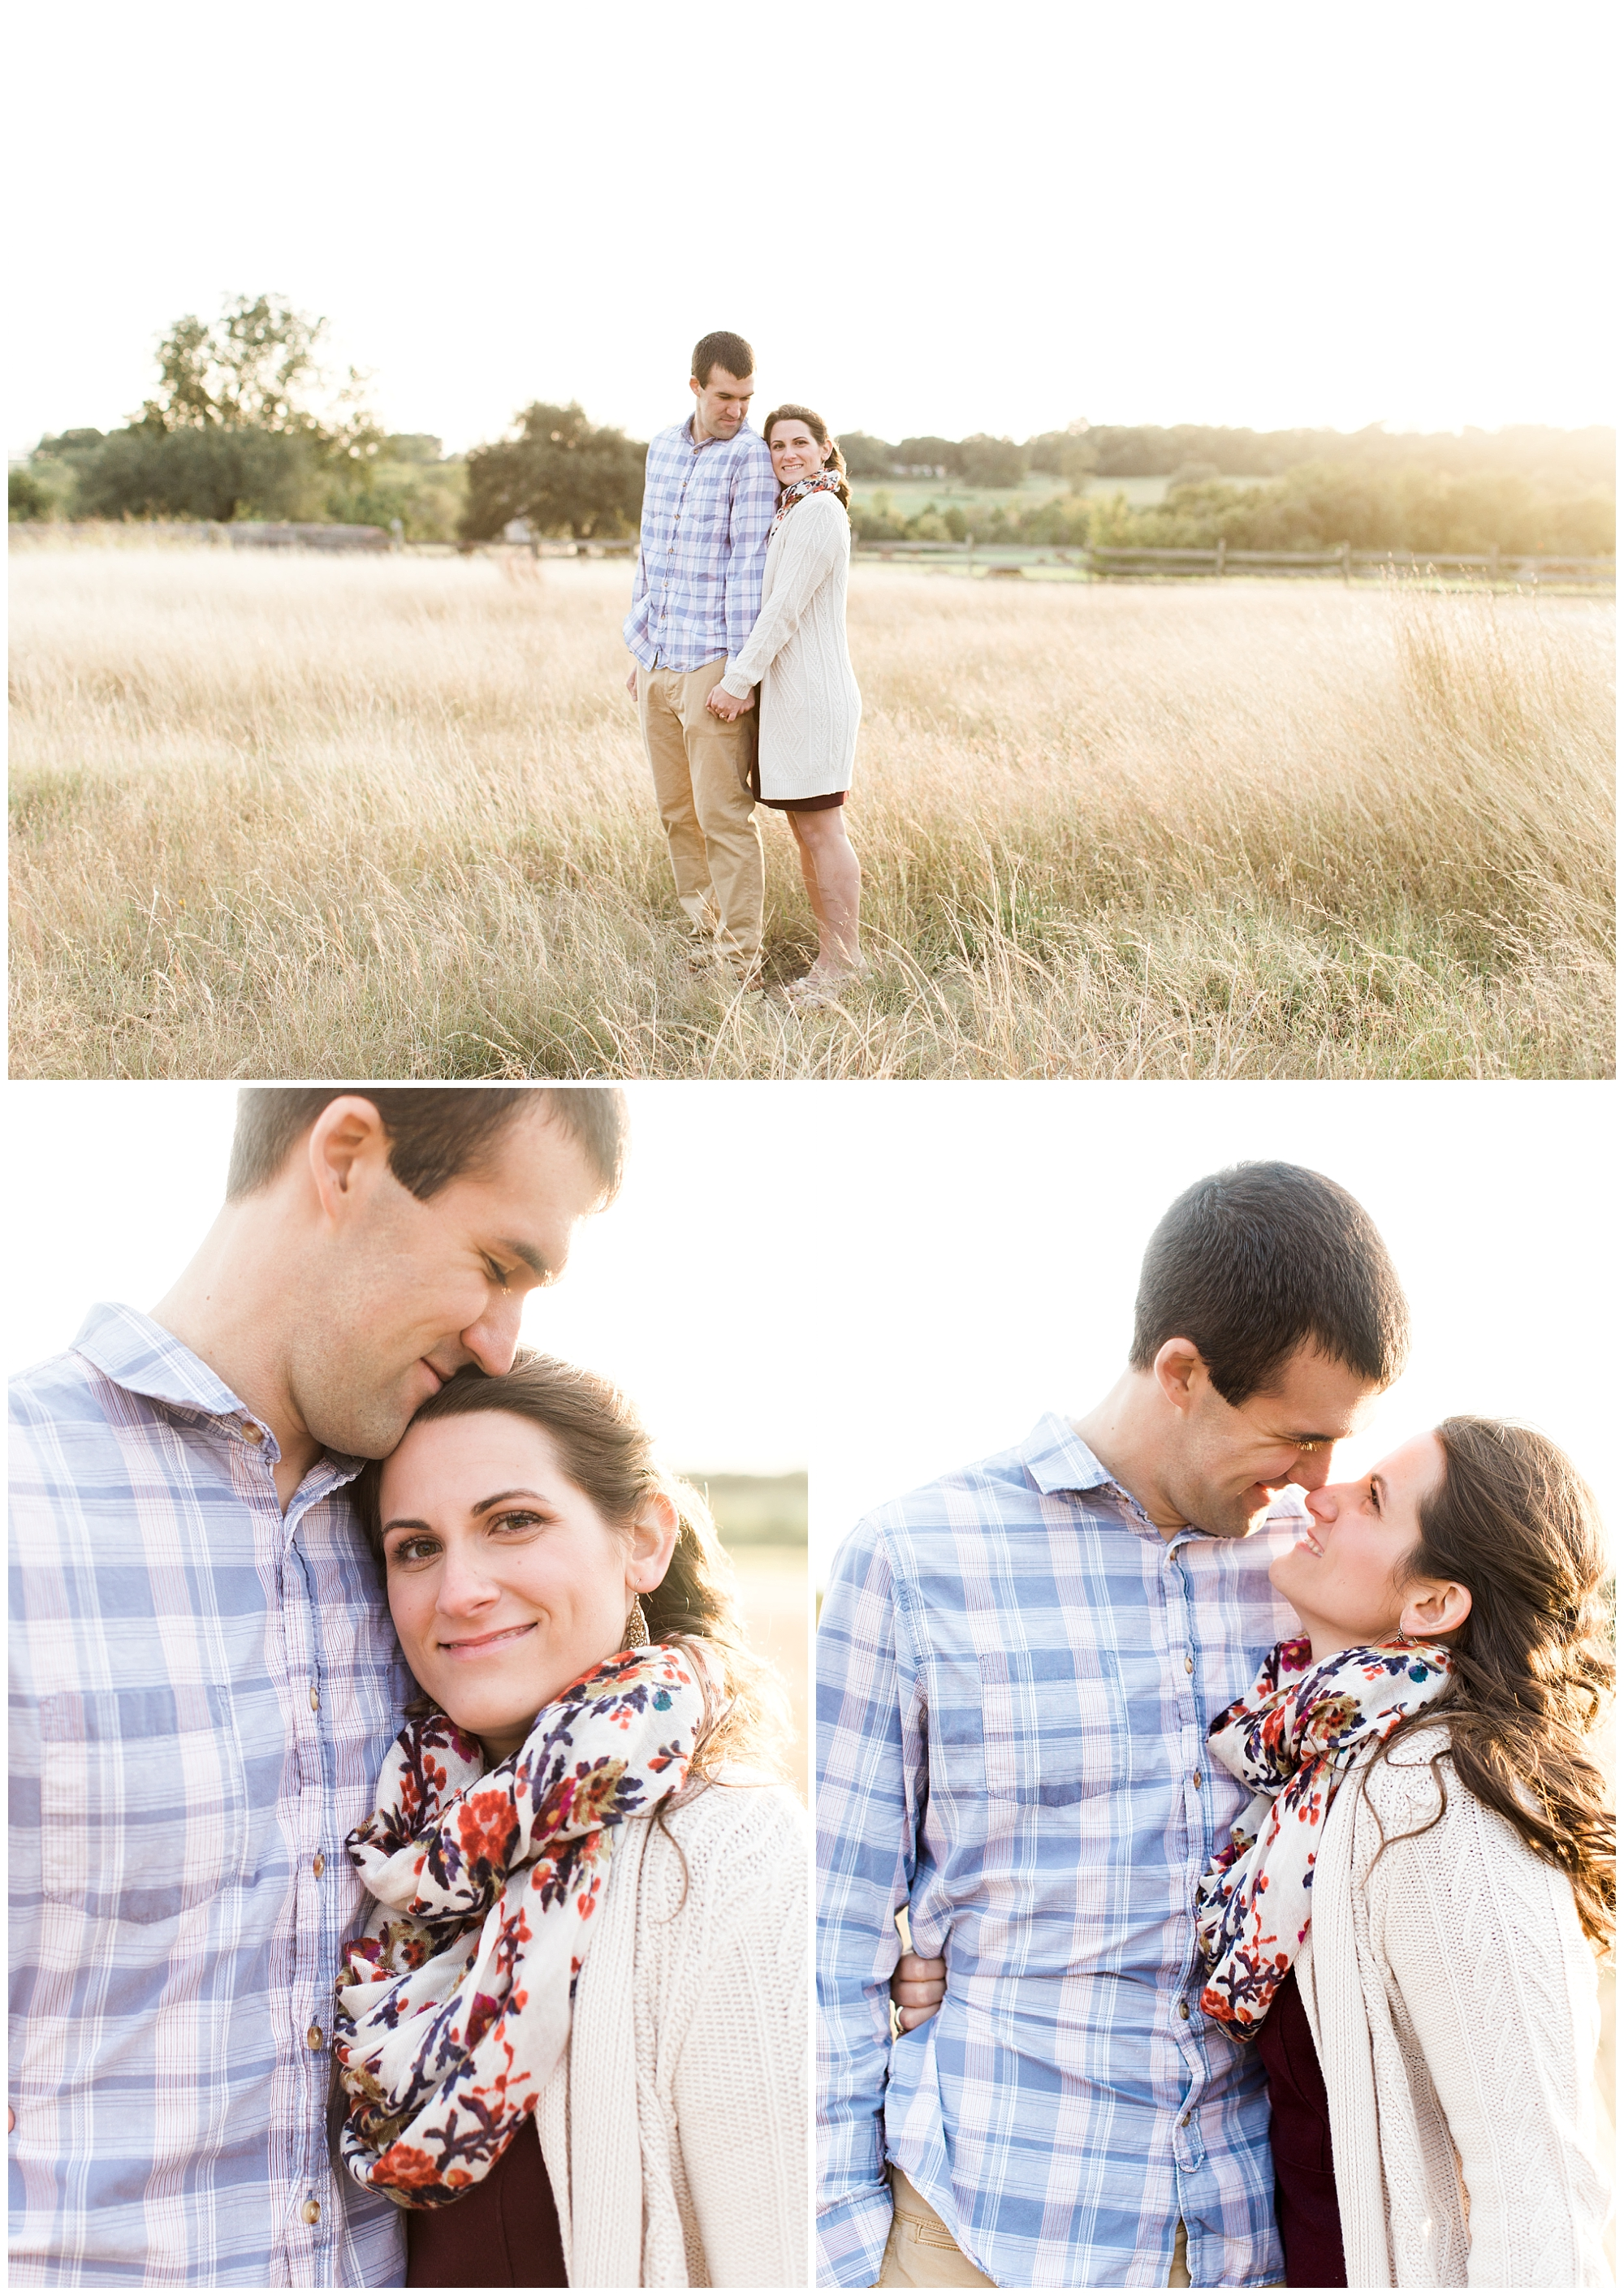 Old_Baylor_Park_Engagement_Session_0015.jpg